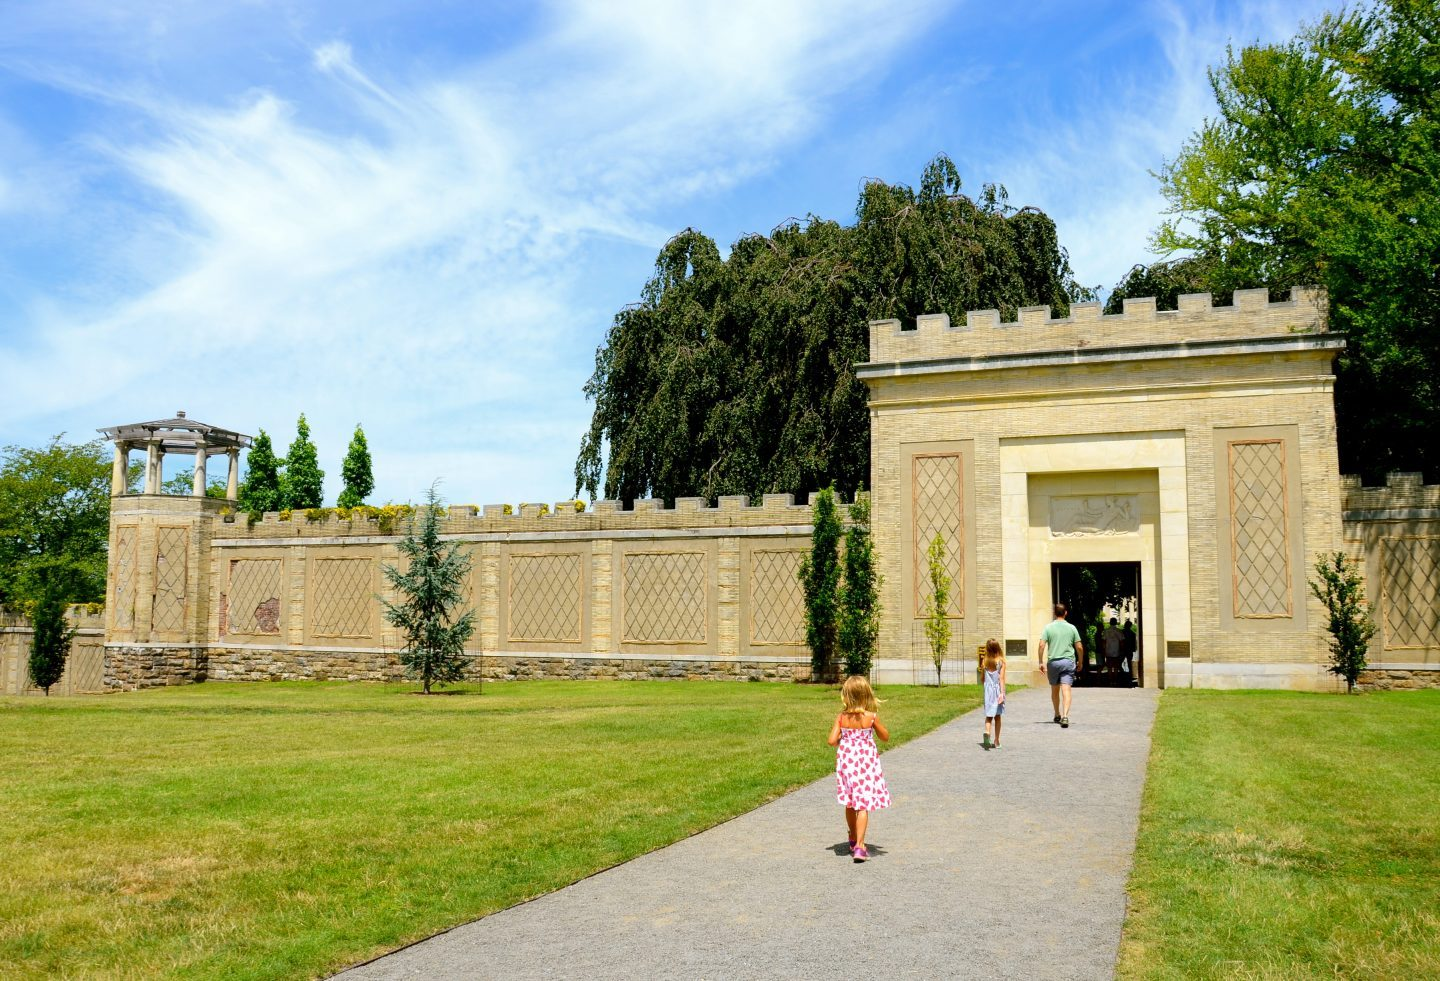 Walking into the entrance of Untermyer Park and Gardens.